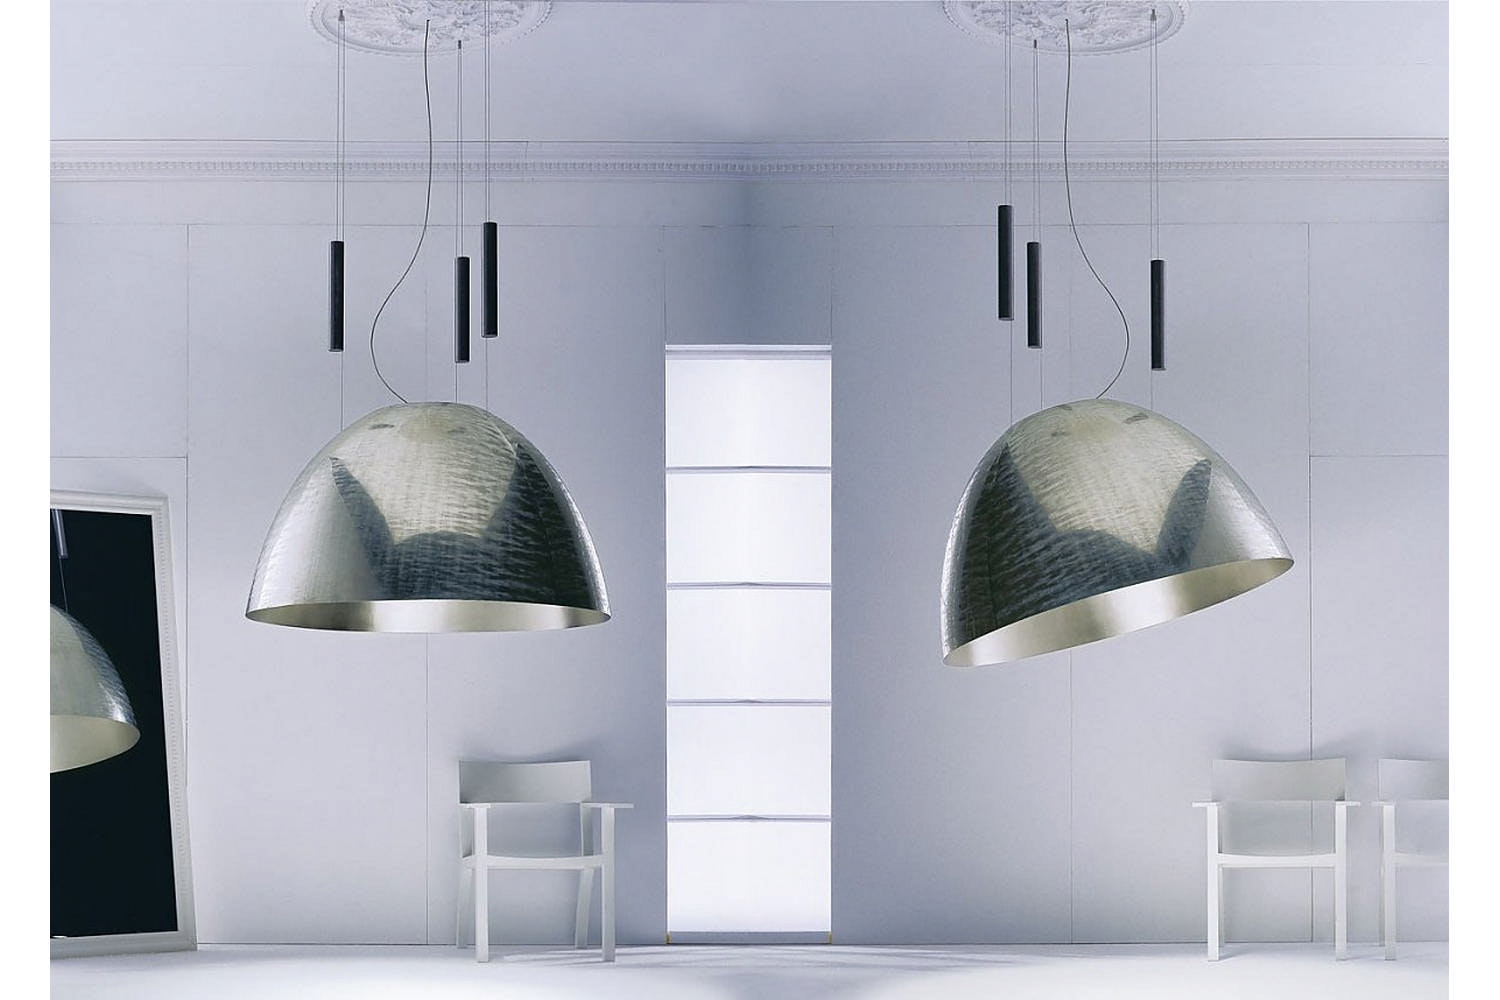 Pierre ou Paul Suspension Lamp by Ingo Maurer und Team for Ingo Maurer